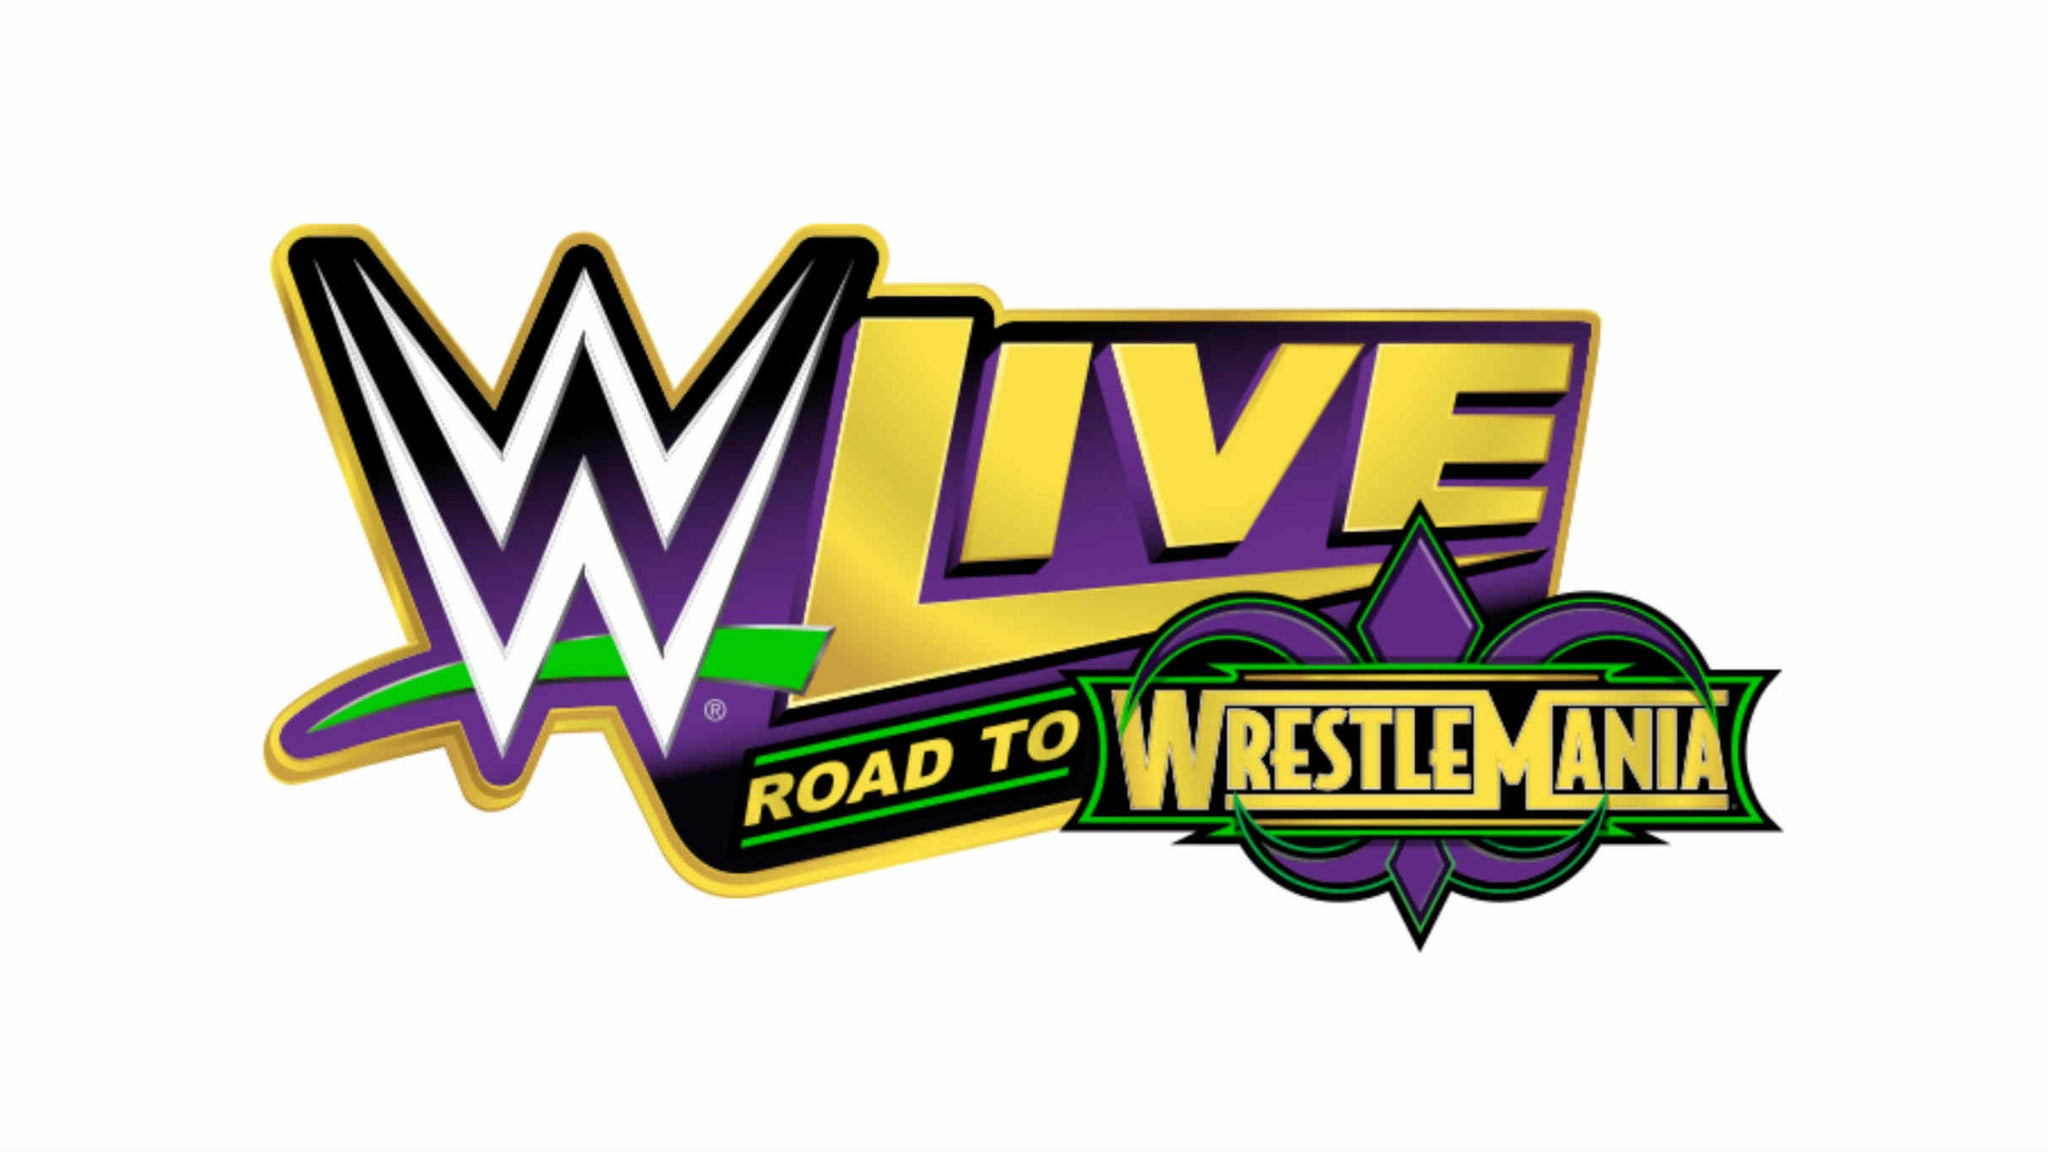 WWE Live Road to WrestleMania at Rapides Coliseum